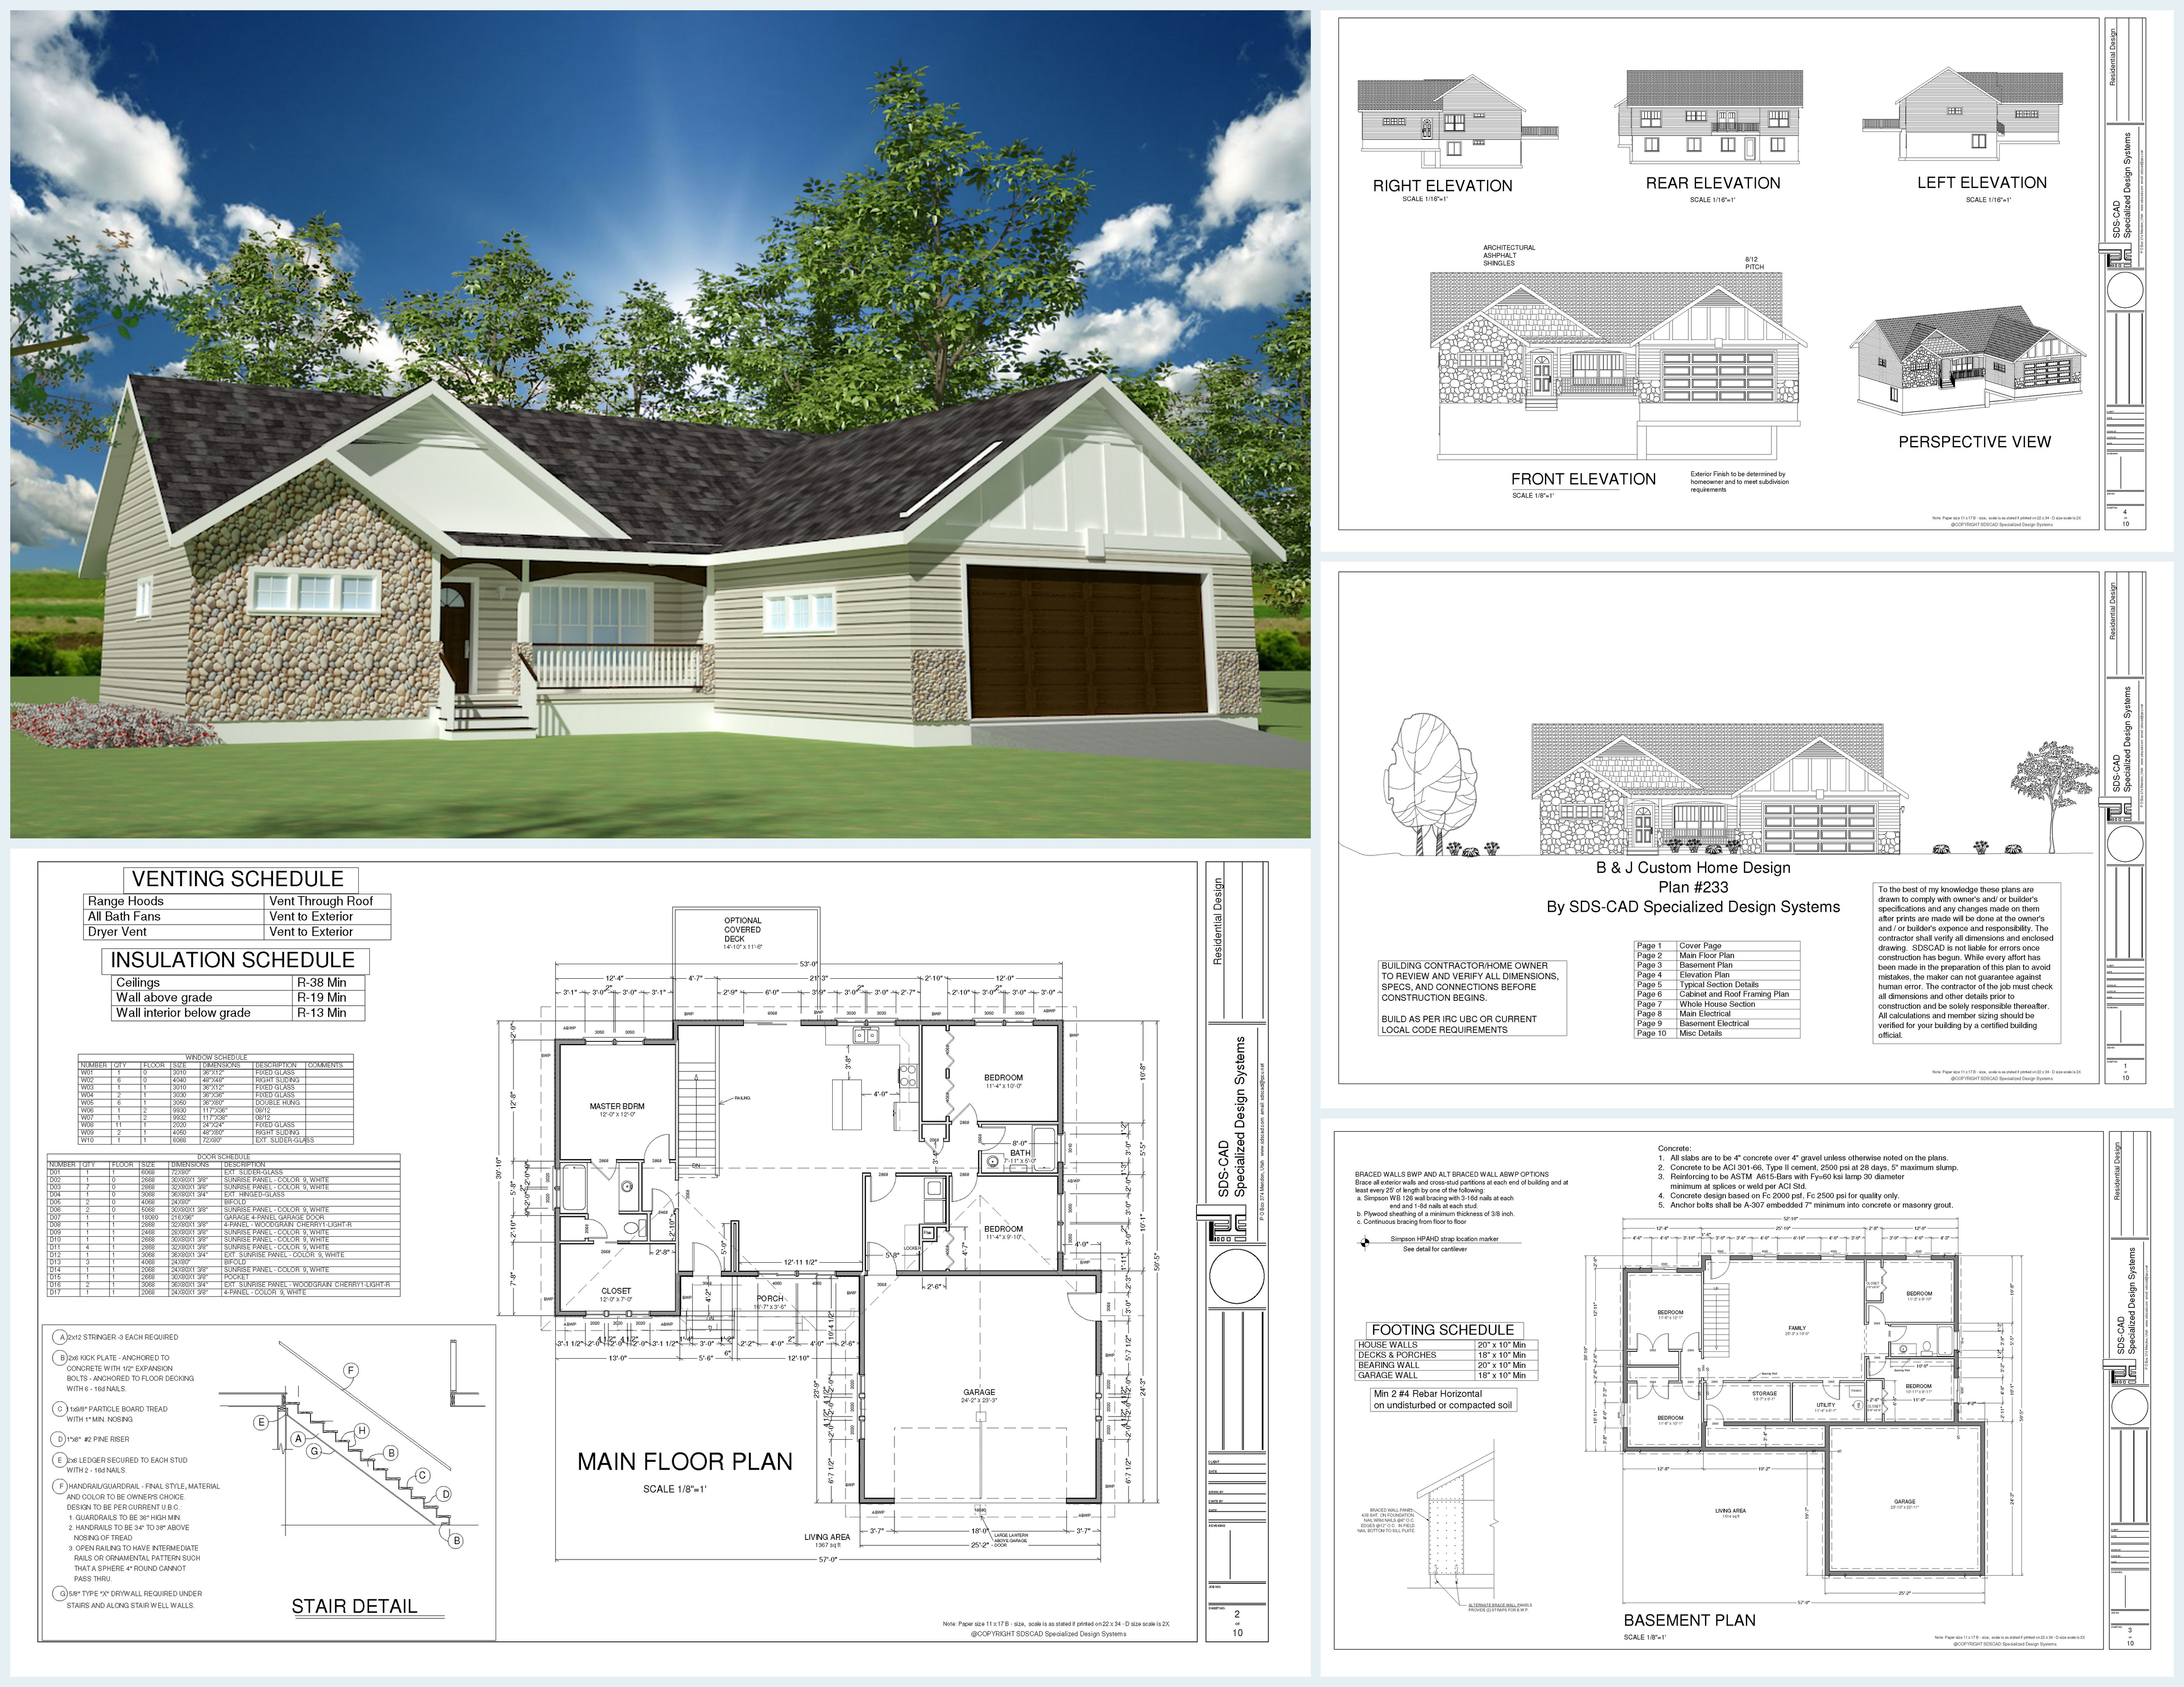 35561097 H233 1367 Sq Ft Custom Spec House Plans in both PDF and DWG File